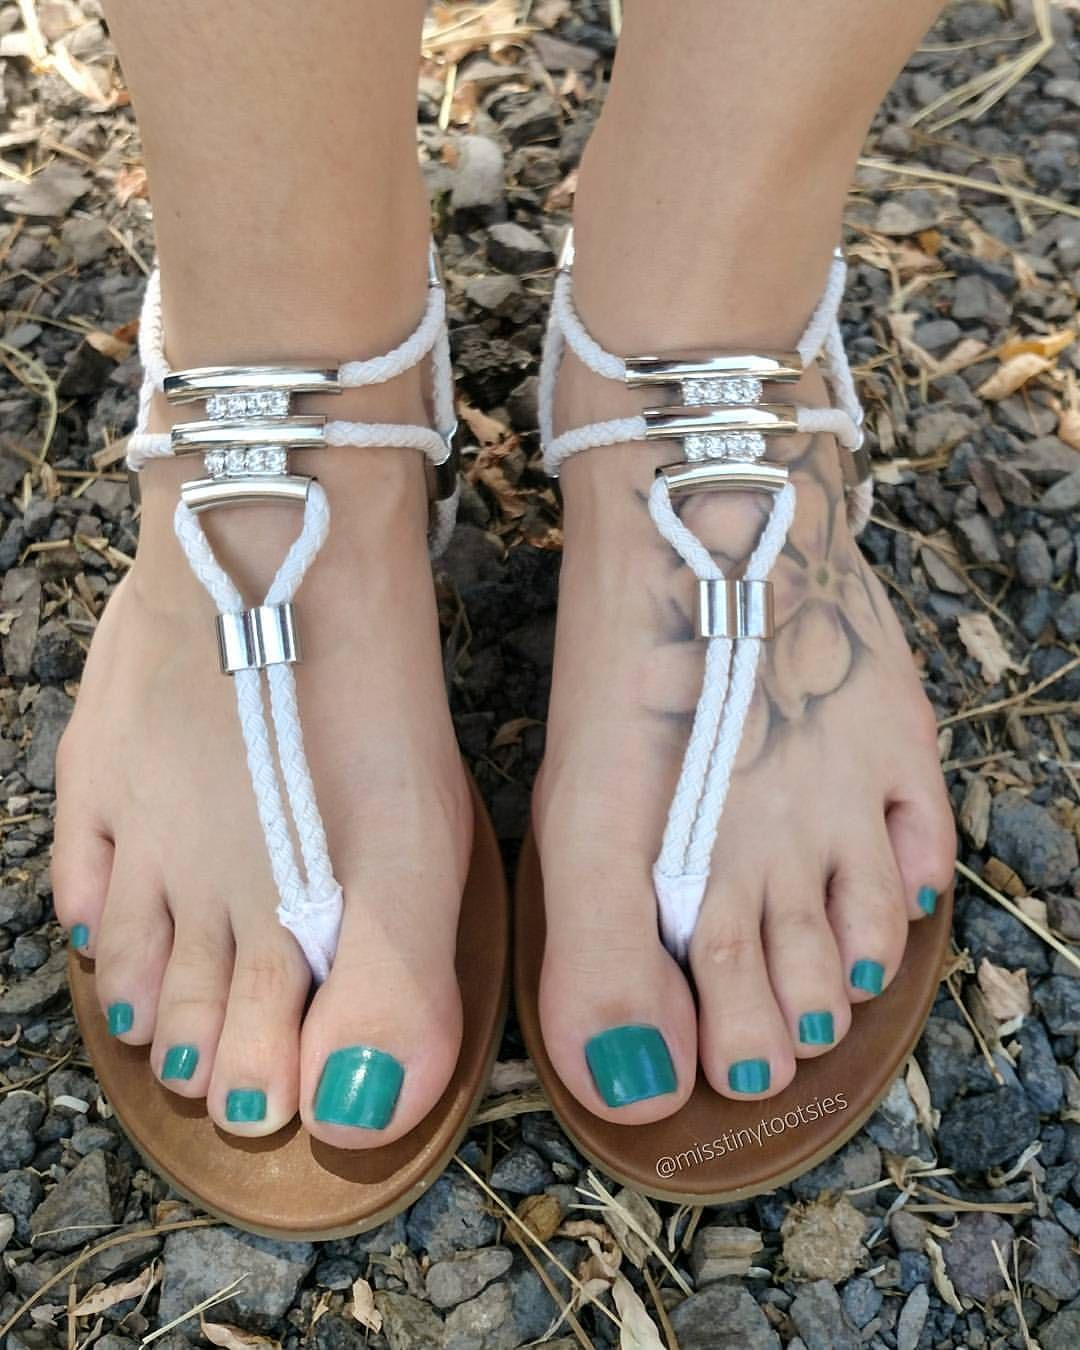 Pin on Pretty toes